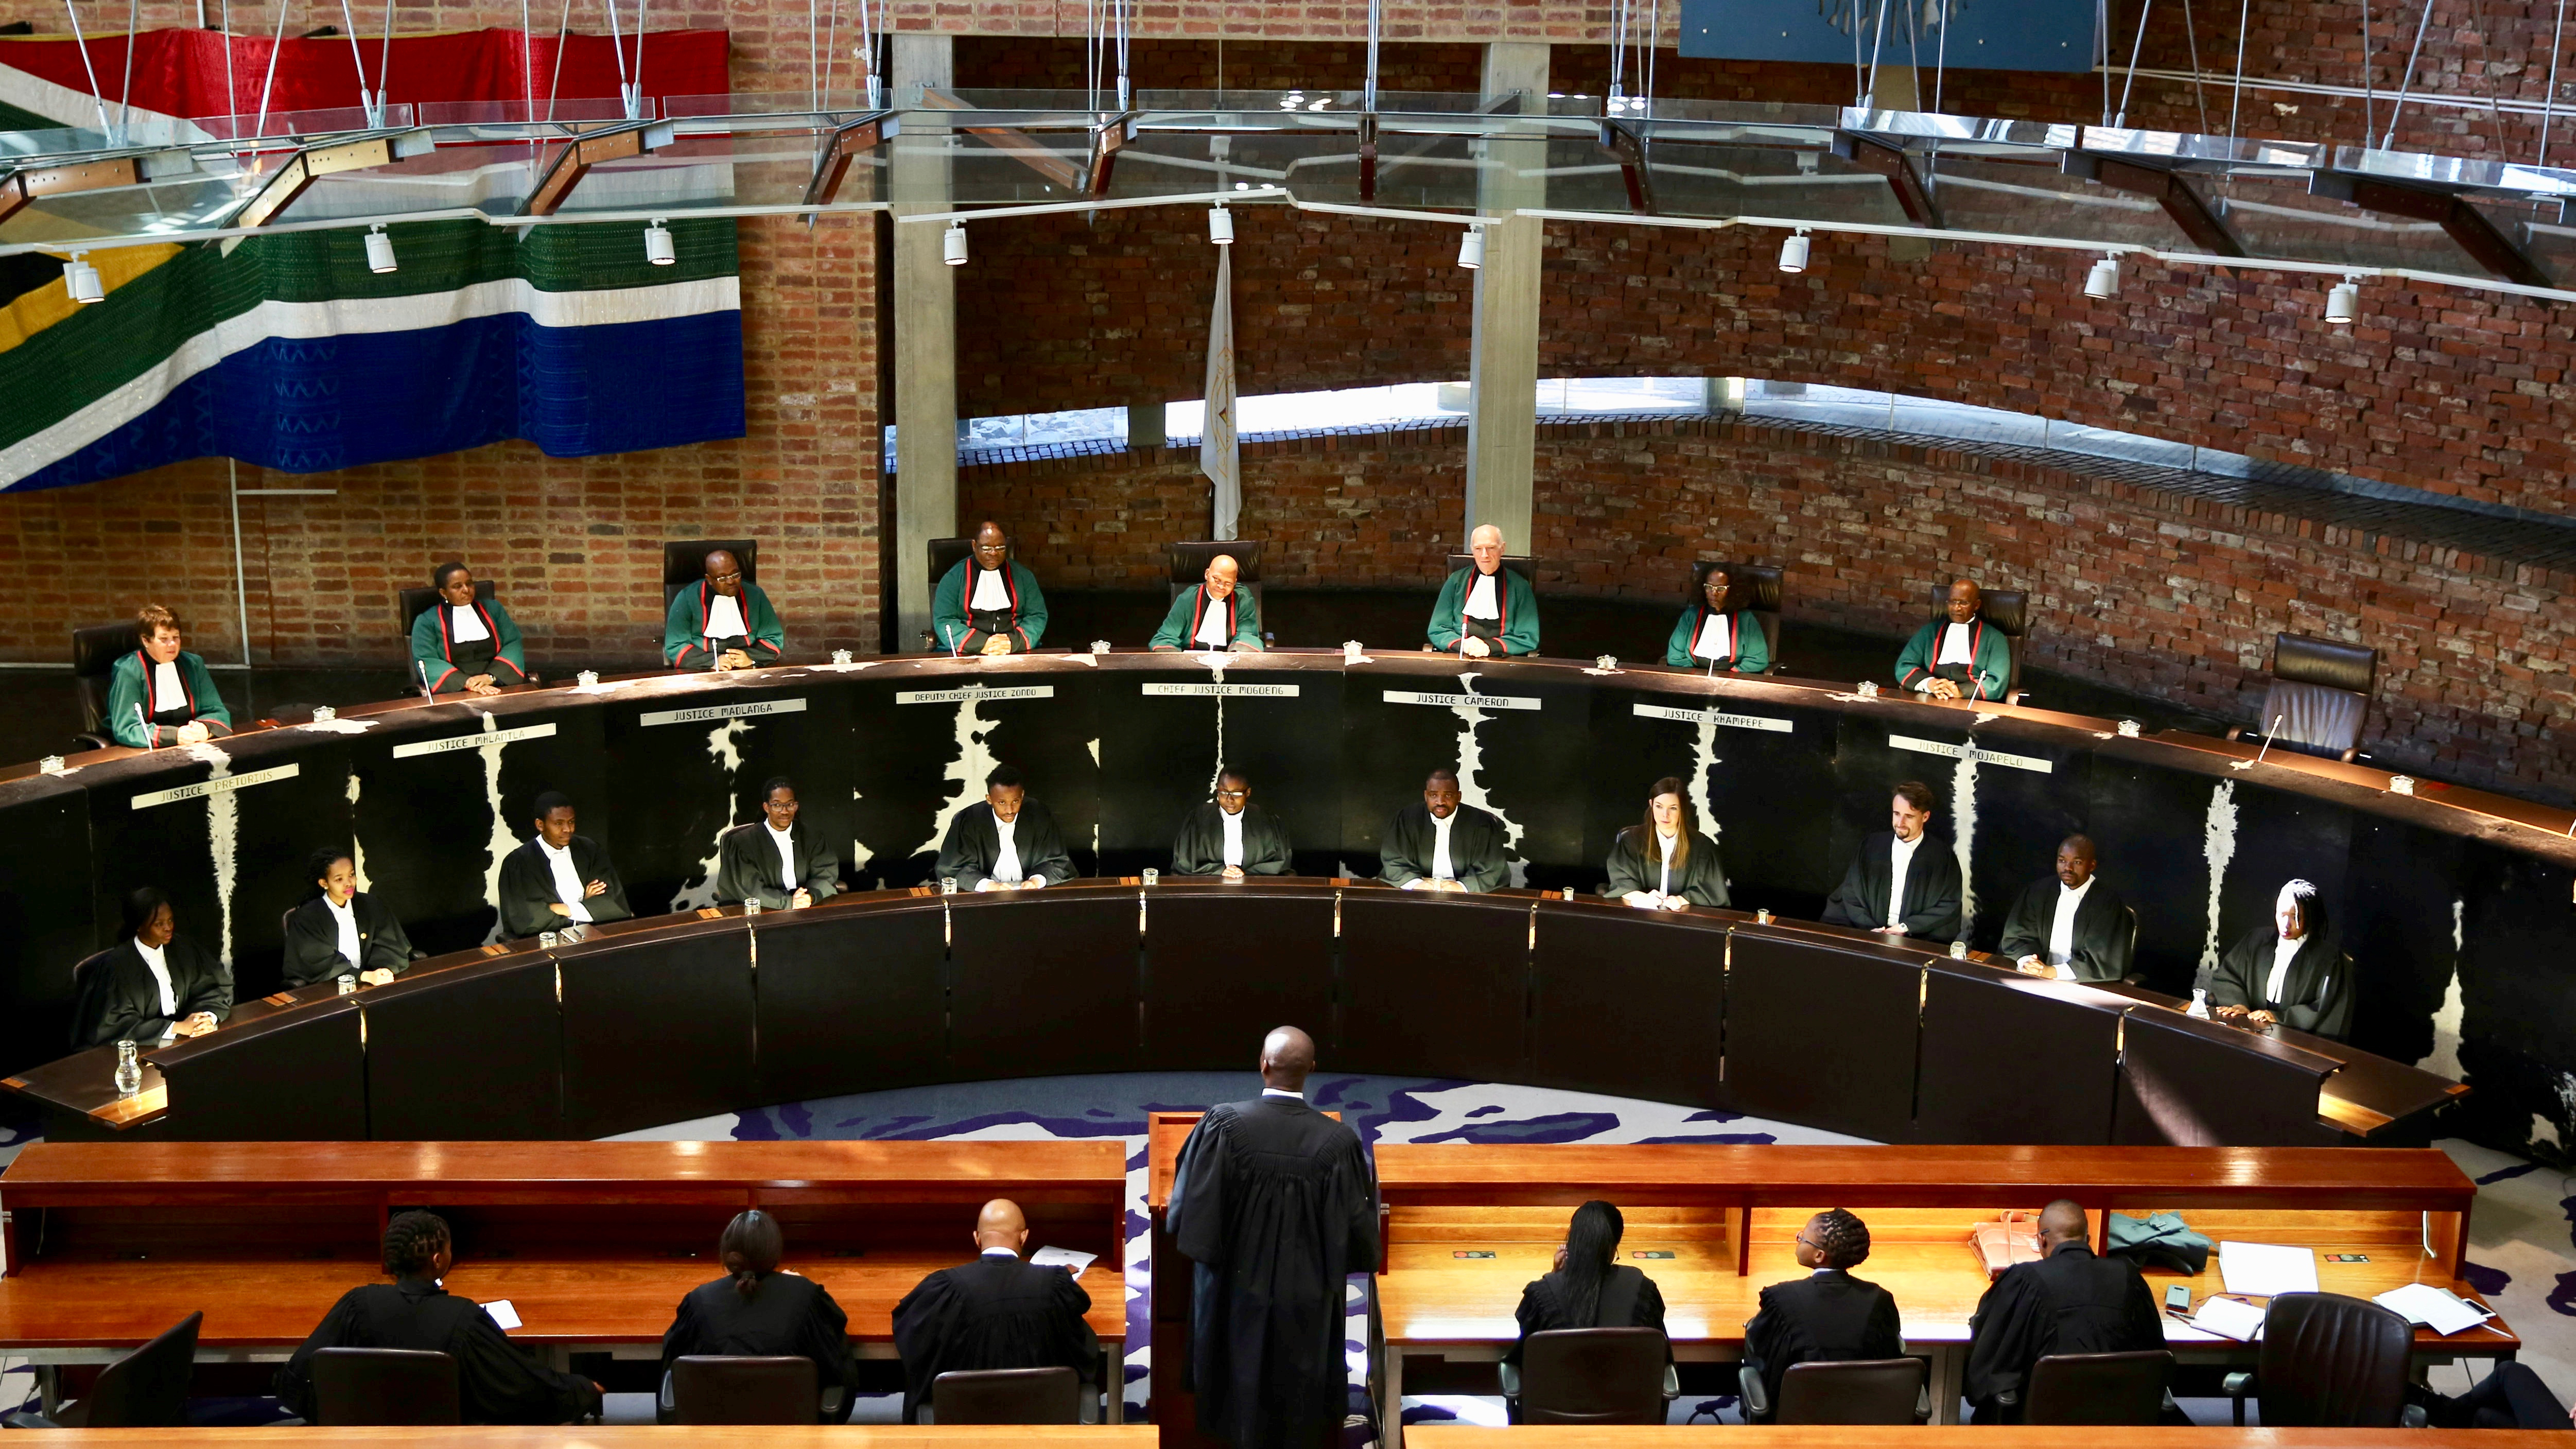 Opposition parties in South Africa turn to courts to oppose the African National Congress' majority